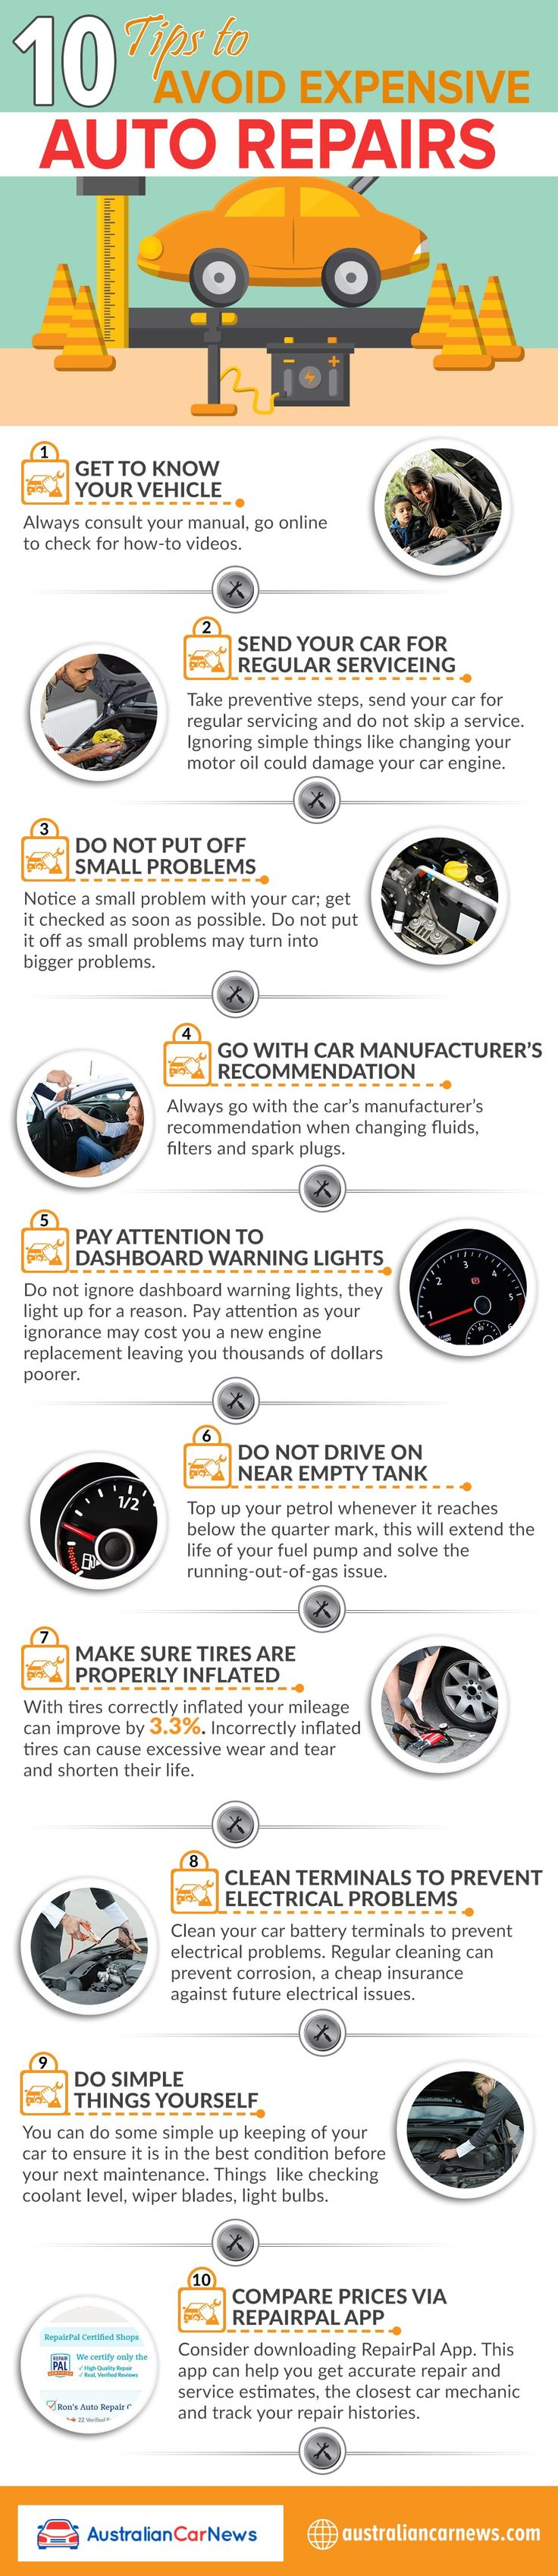 Auto repair shops near me and reviews - Best 25 Car Repair Ideas Only On Pinterest Car Repair Near Me Auto Repair Near Me And Auto Maintenance